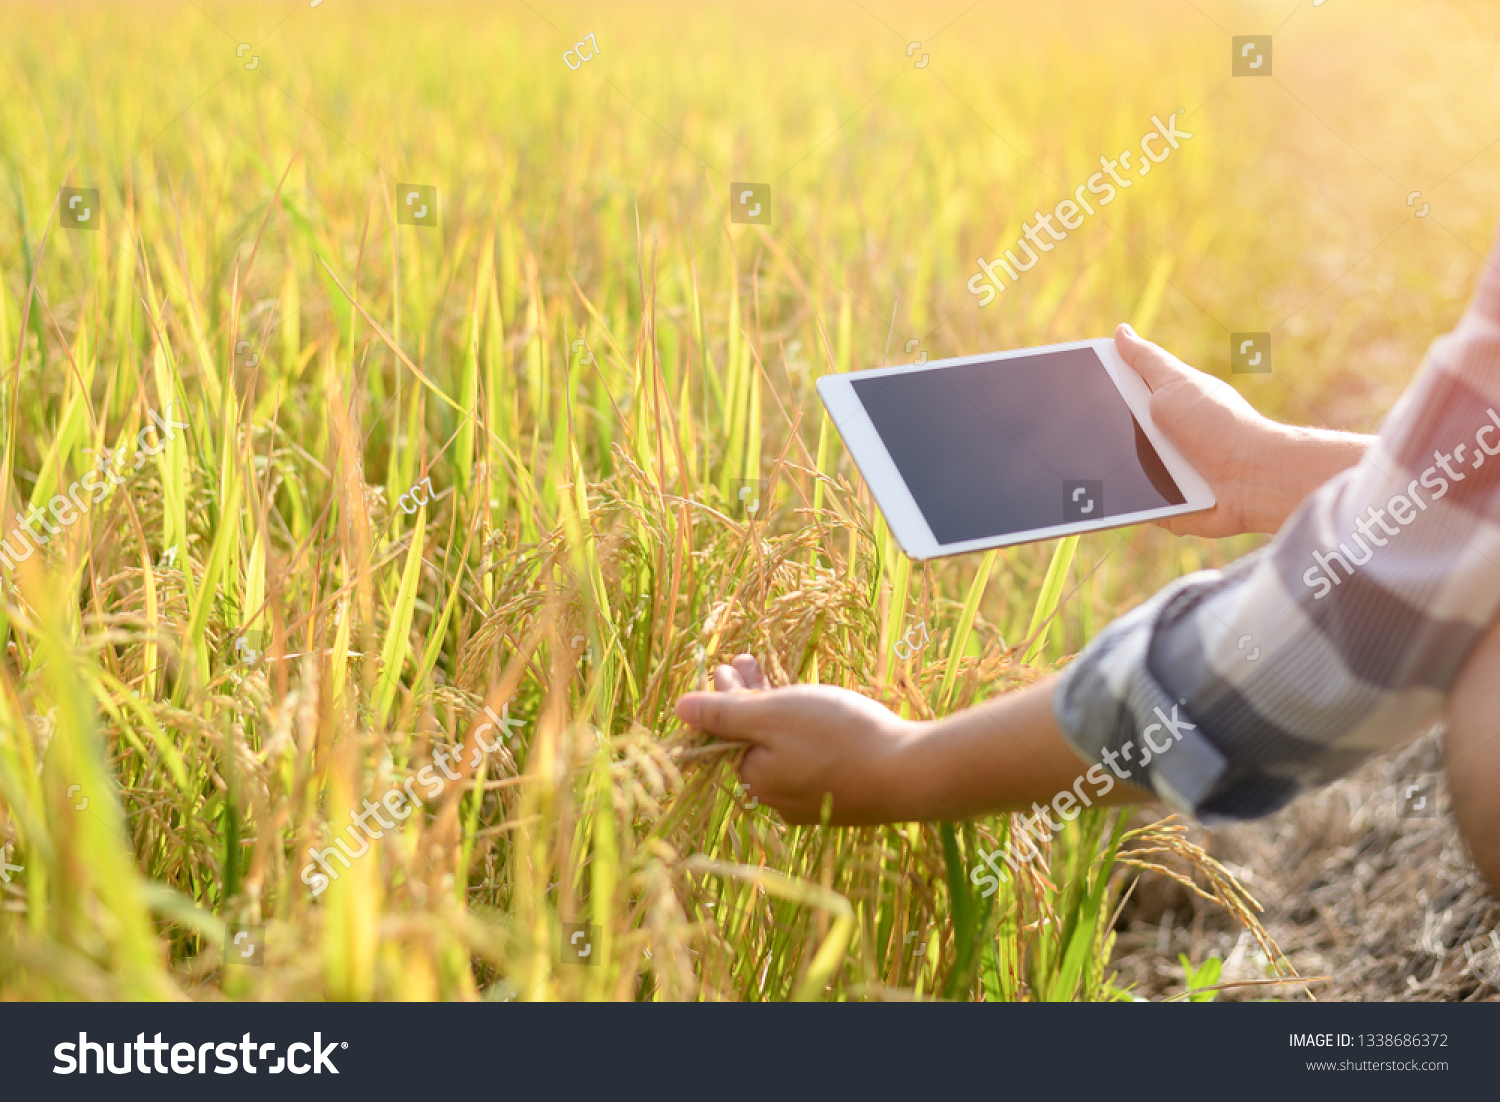 Farmer Sitting Rice Field Using Tablet Technology Stock Image 1338686372